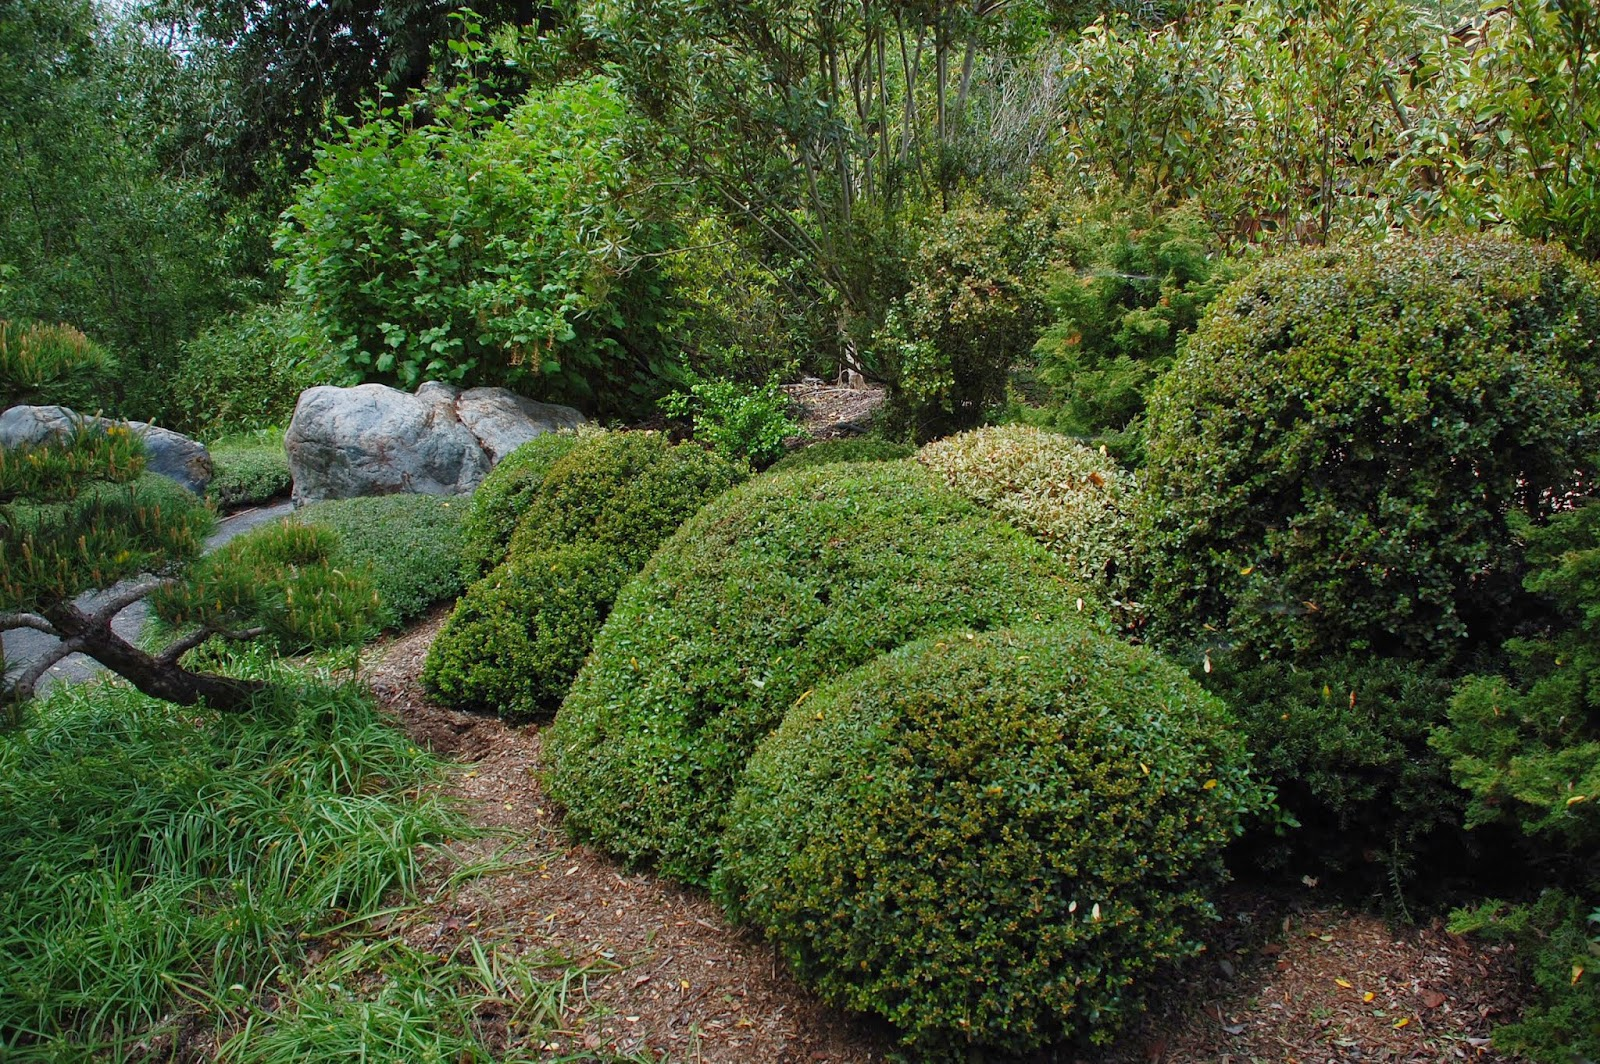 Robert ketchell 39 s blog pruning and the japanese garden for Landscape trees